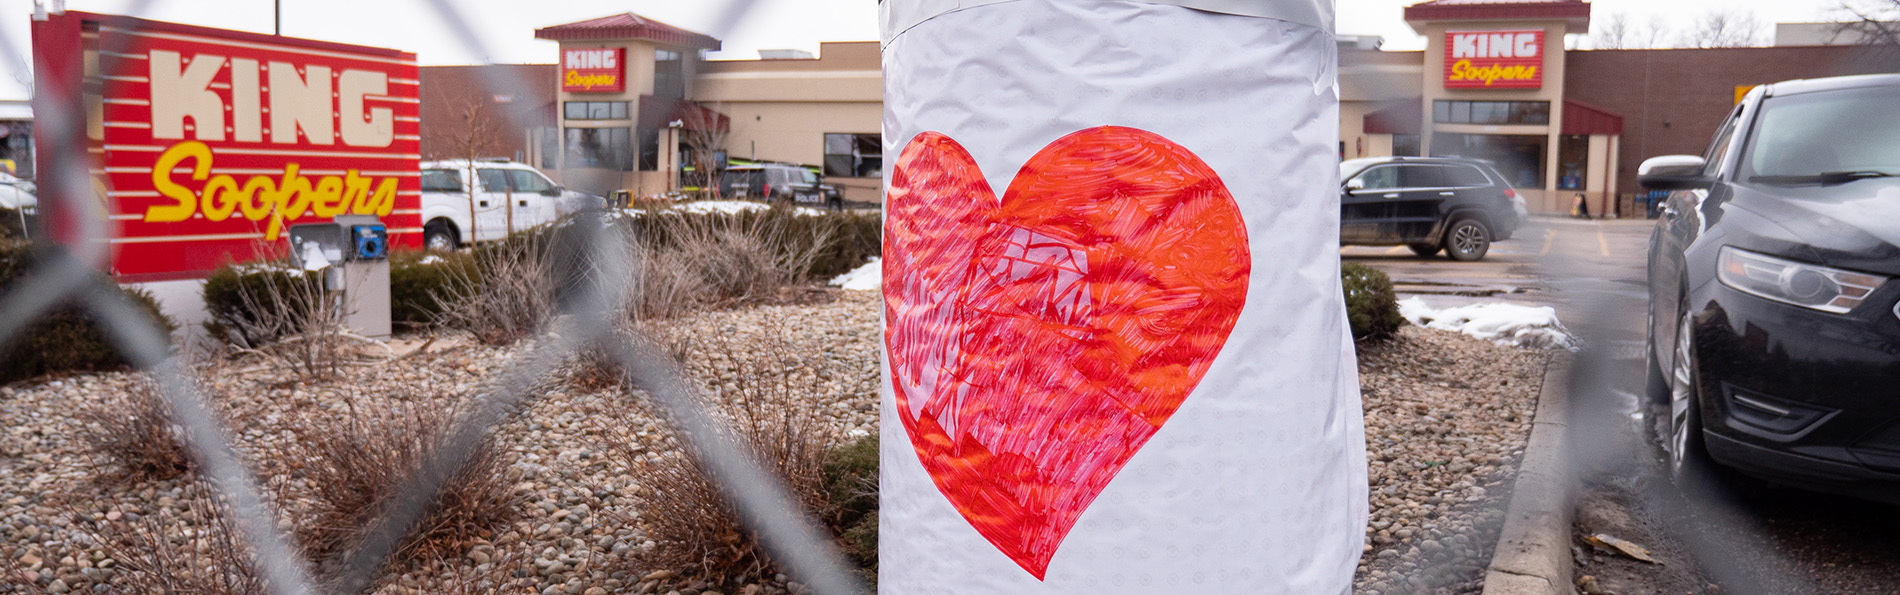 A large poster of a heart on a fence in front of Boulder King Soopers